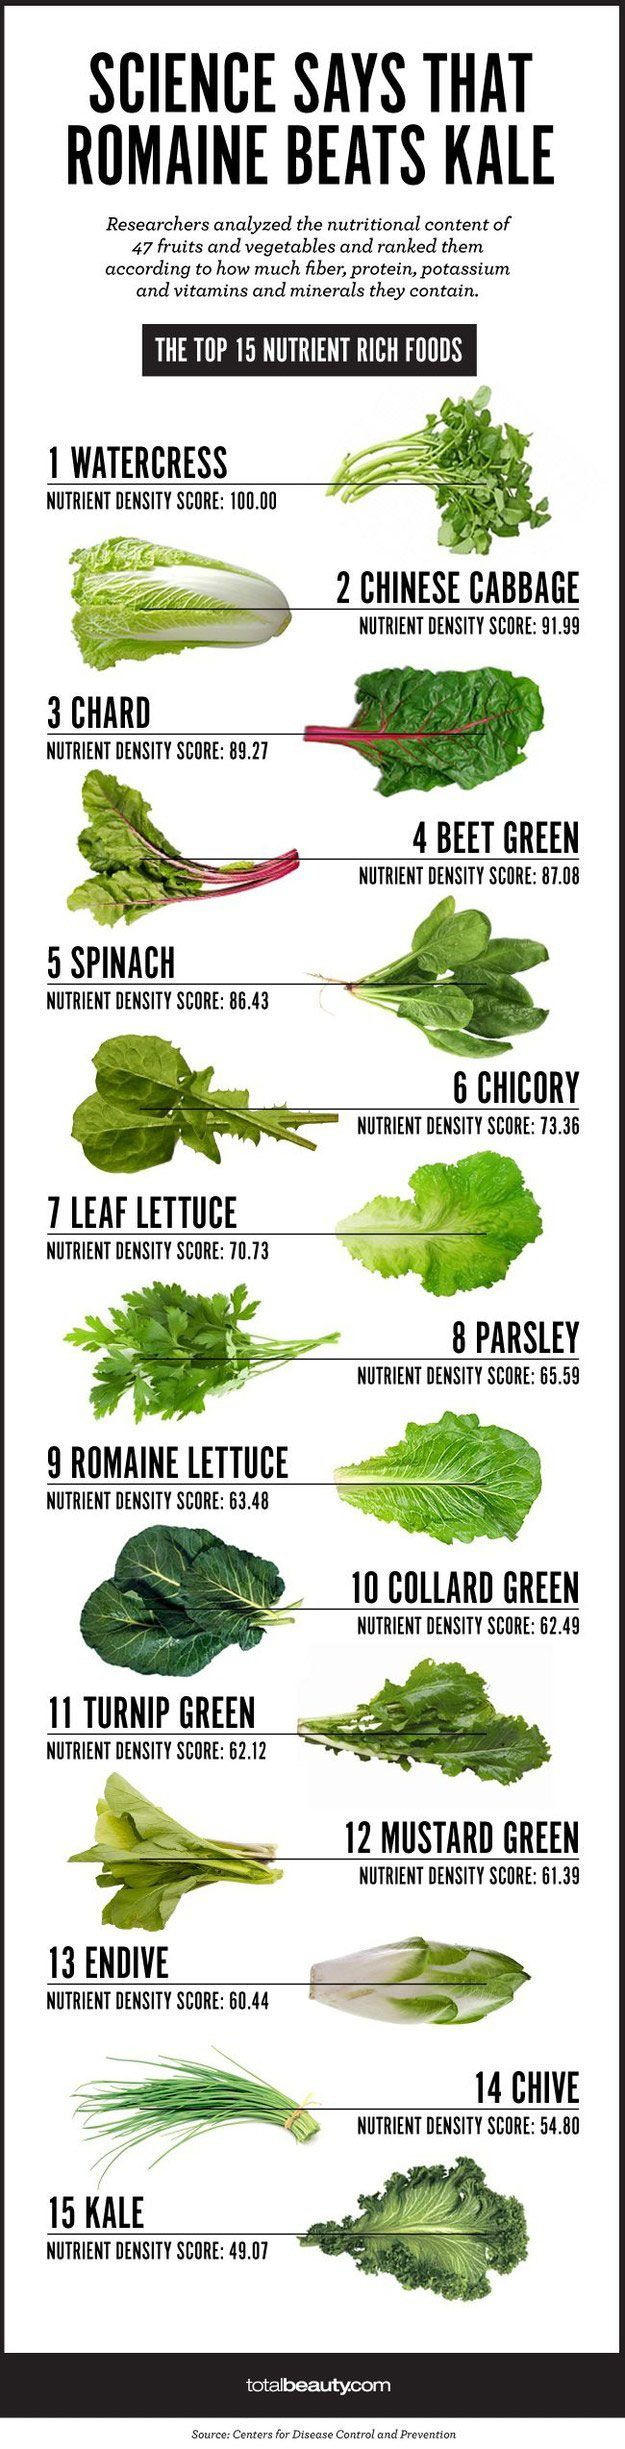 Healthy Eating - Nutrient Dense Leafy Greens   Homemade Recipes http://homemaderecipes.com/healthy/healthy-eating-diagrams